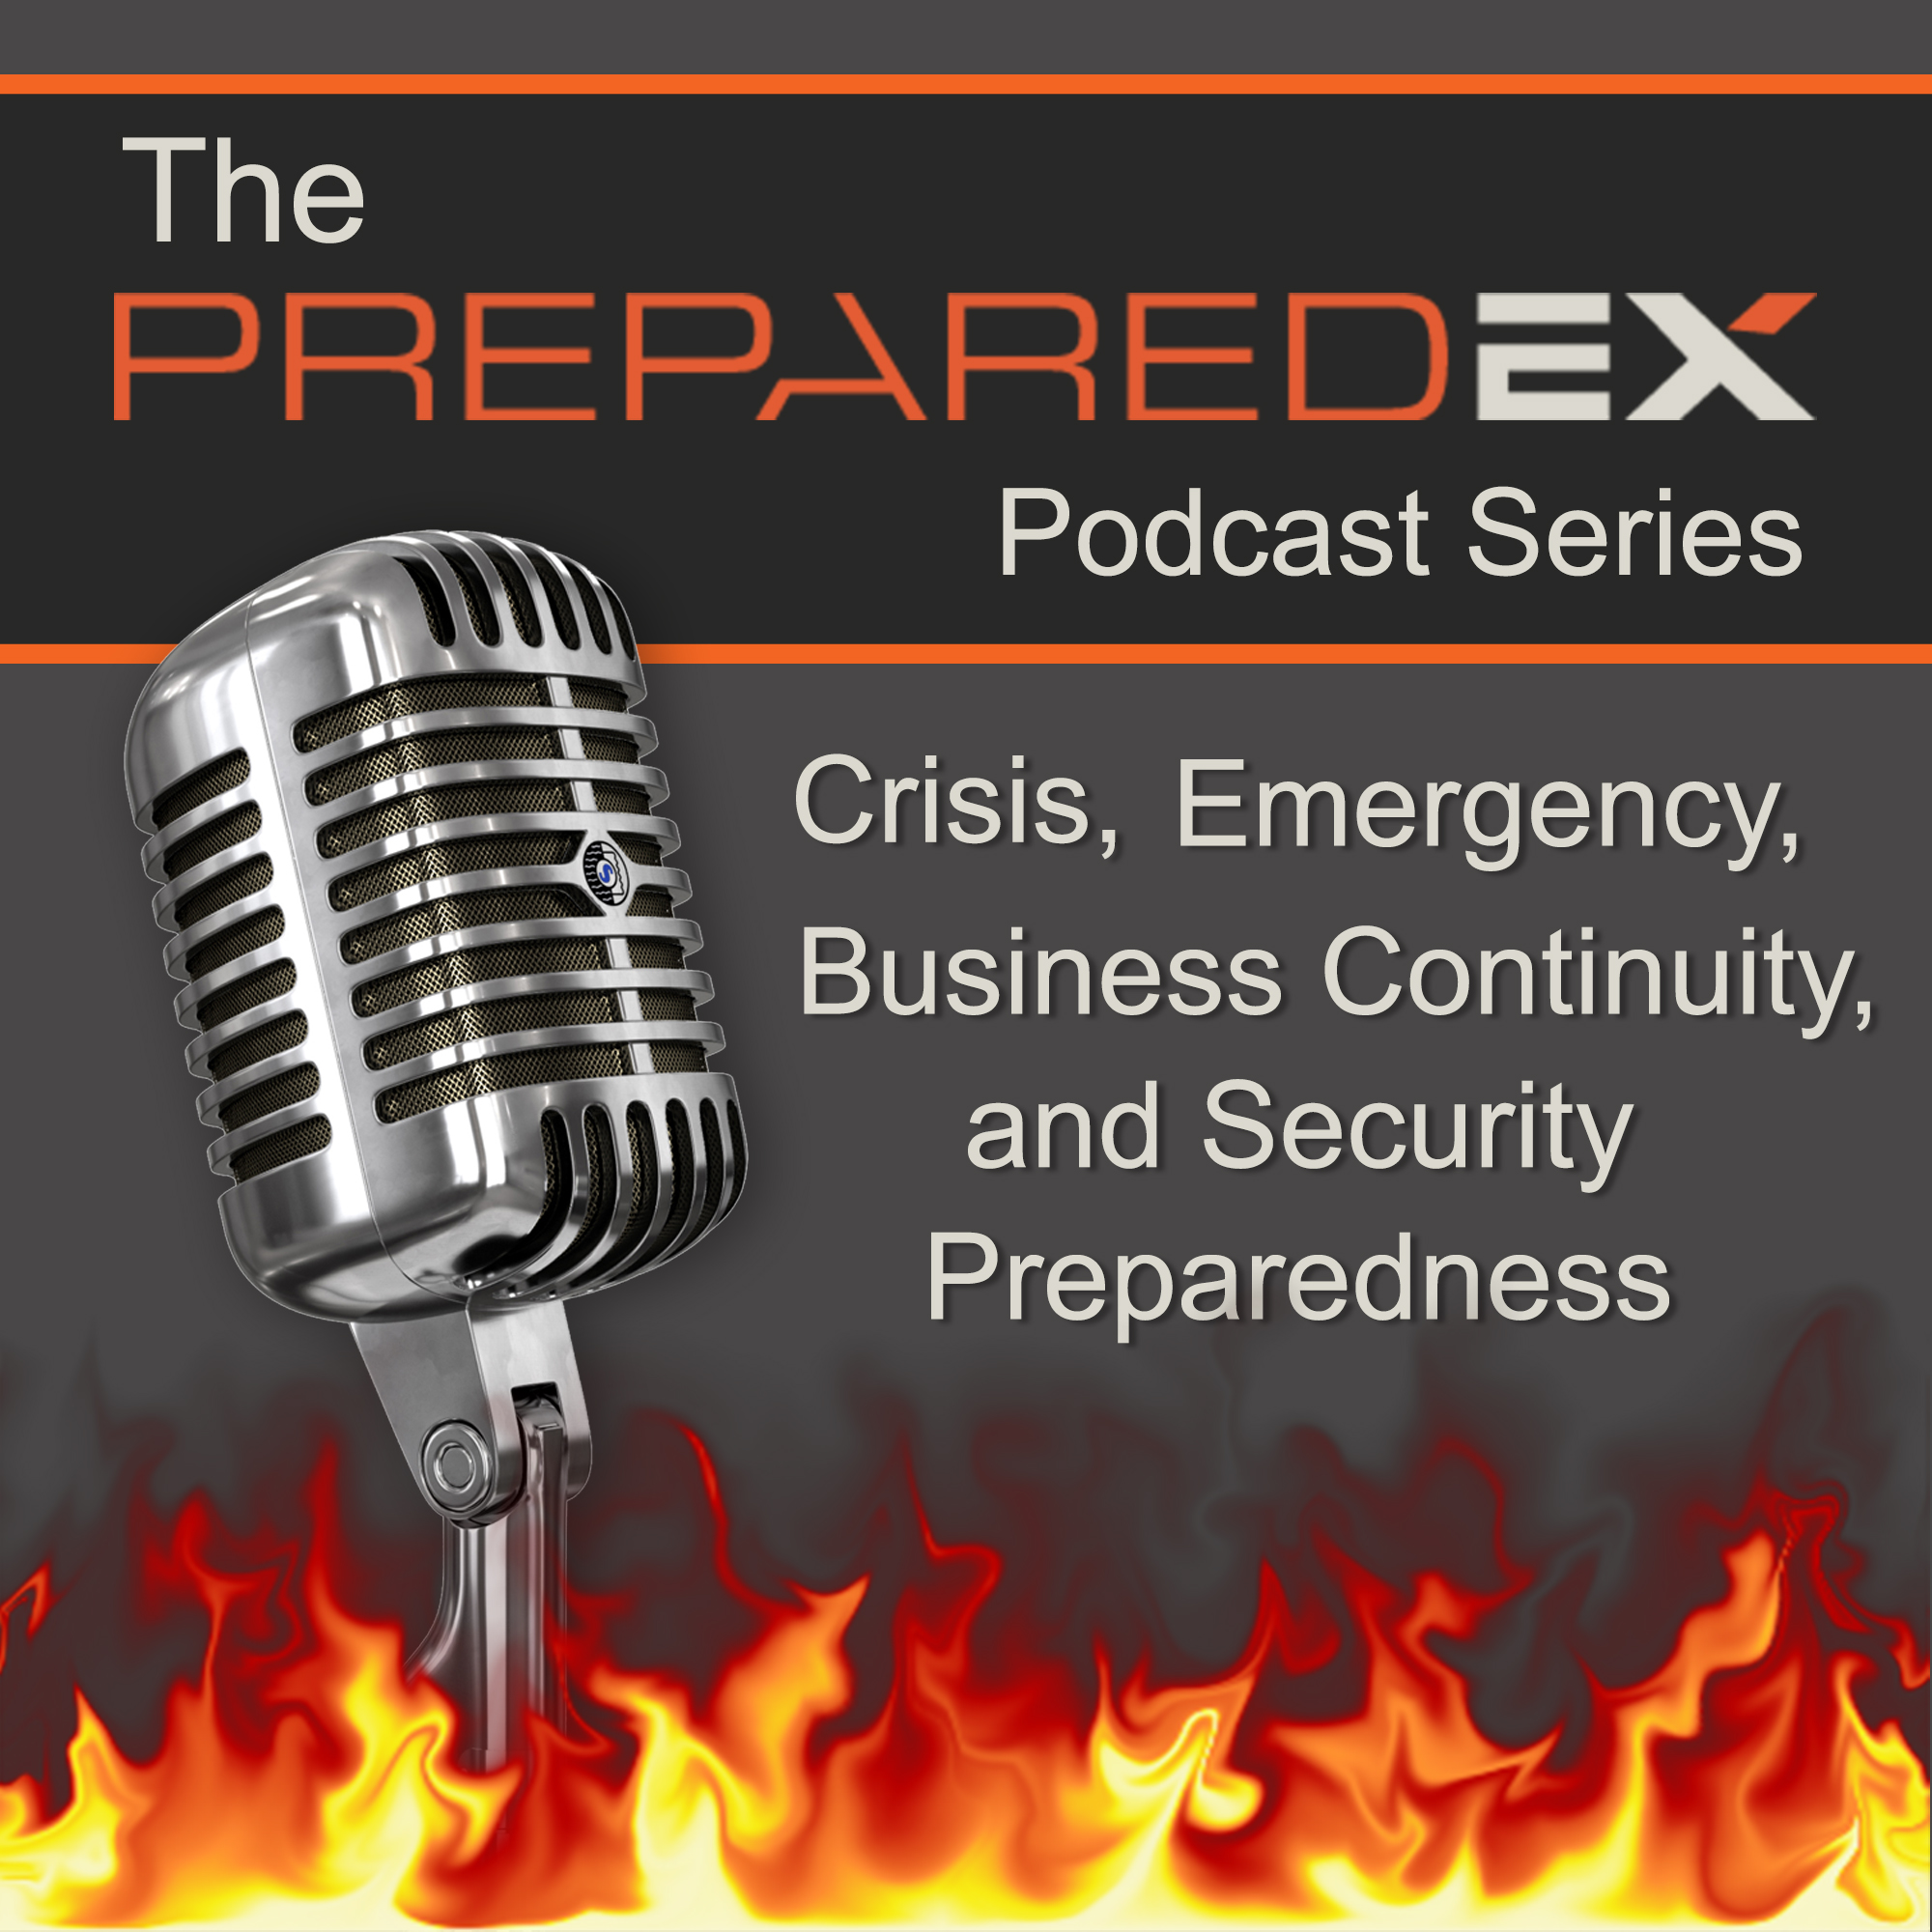 PreparedEx Podcast Series